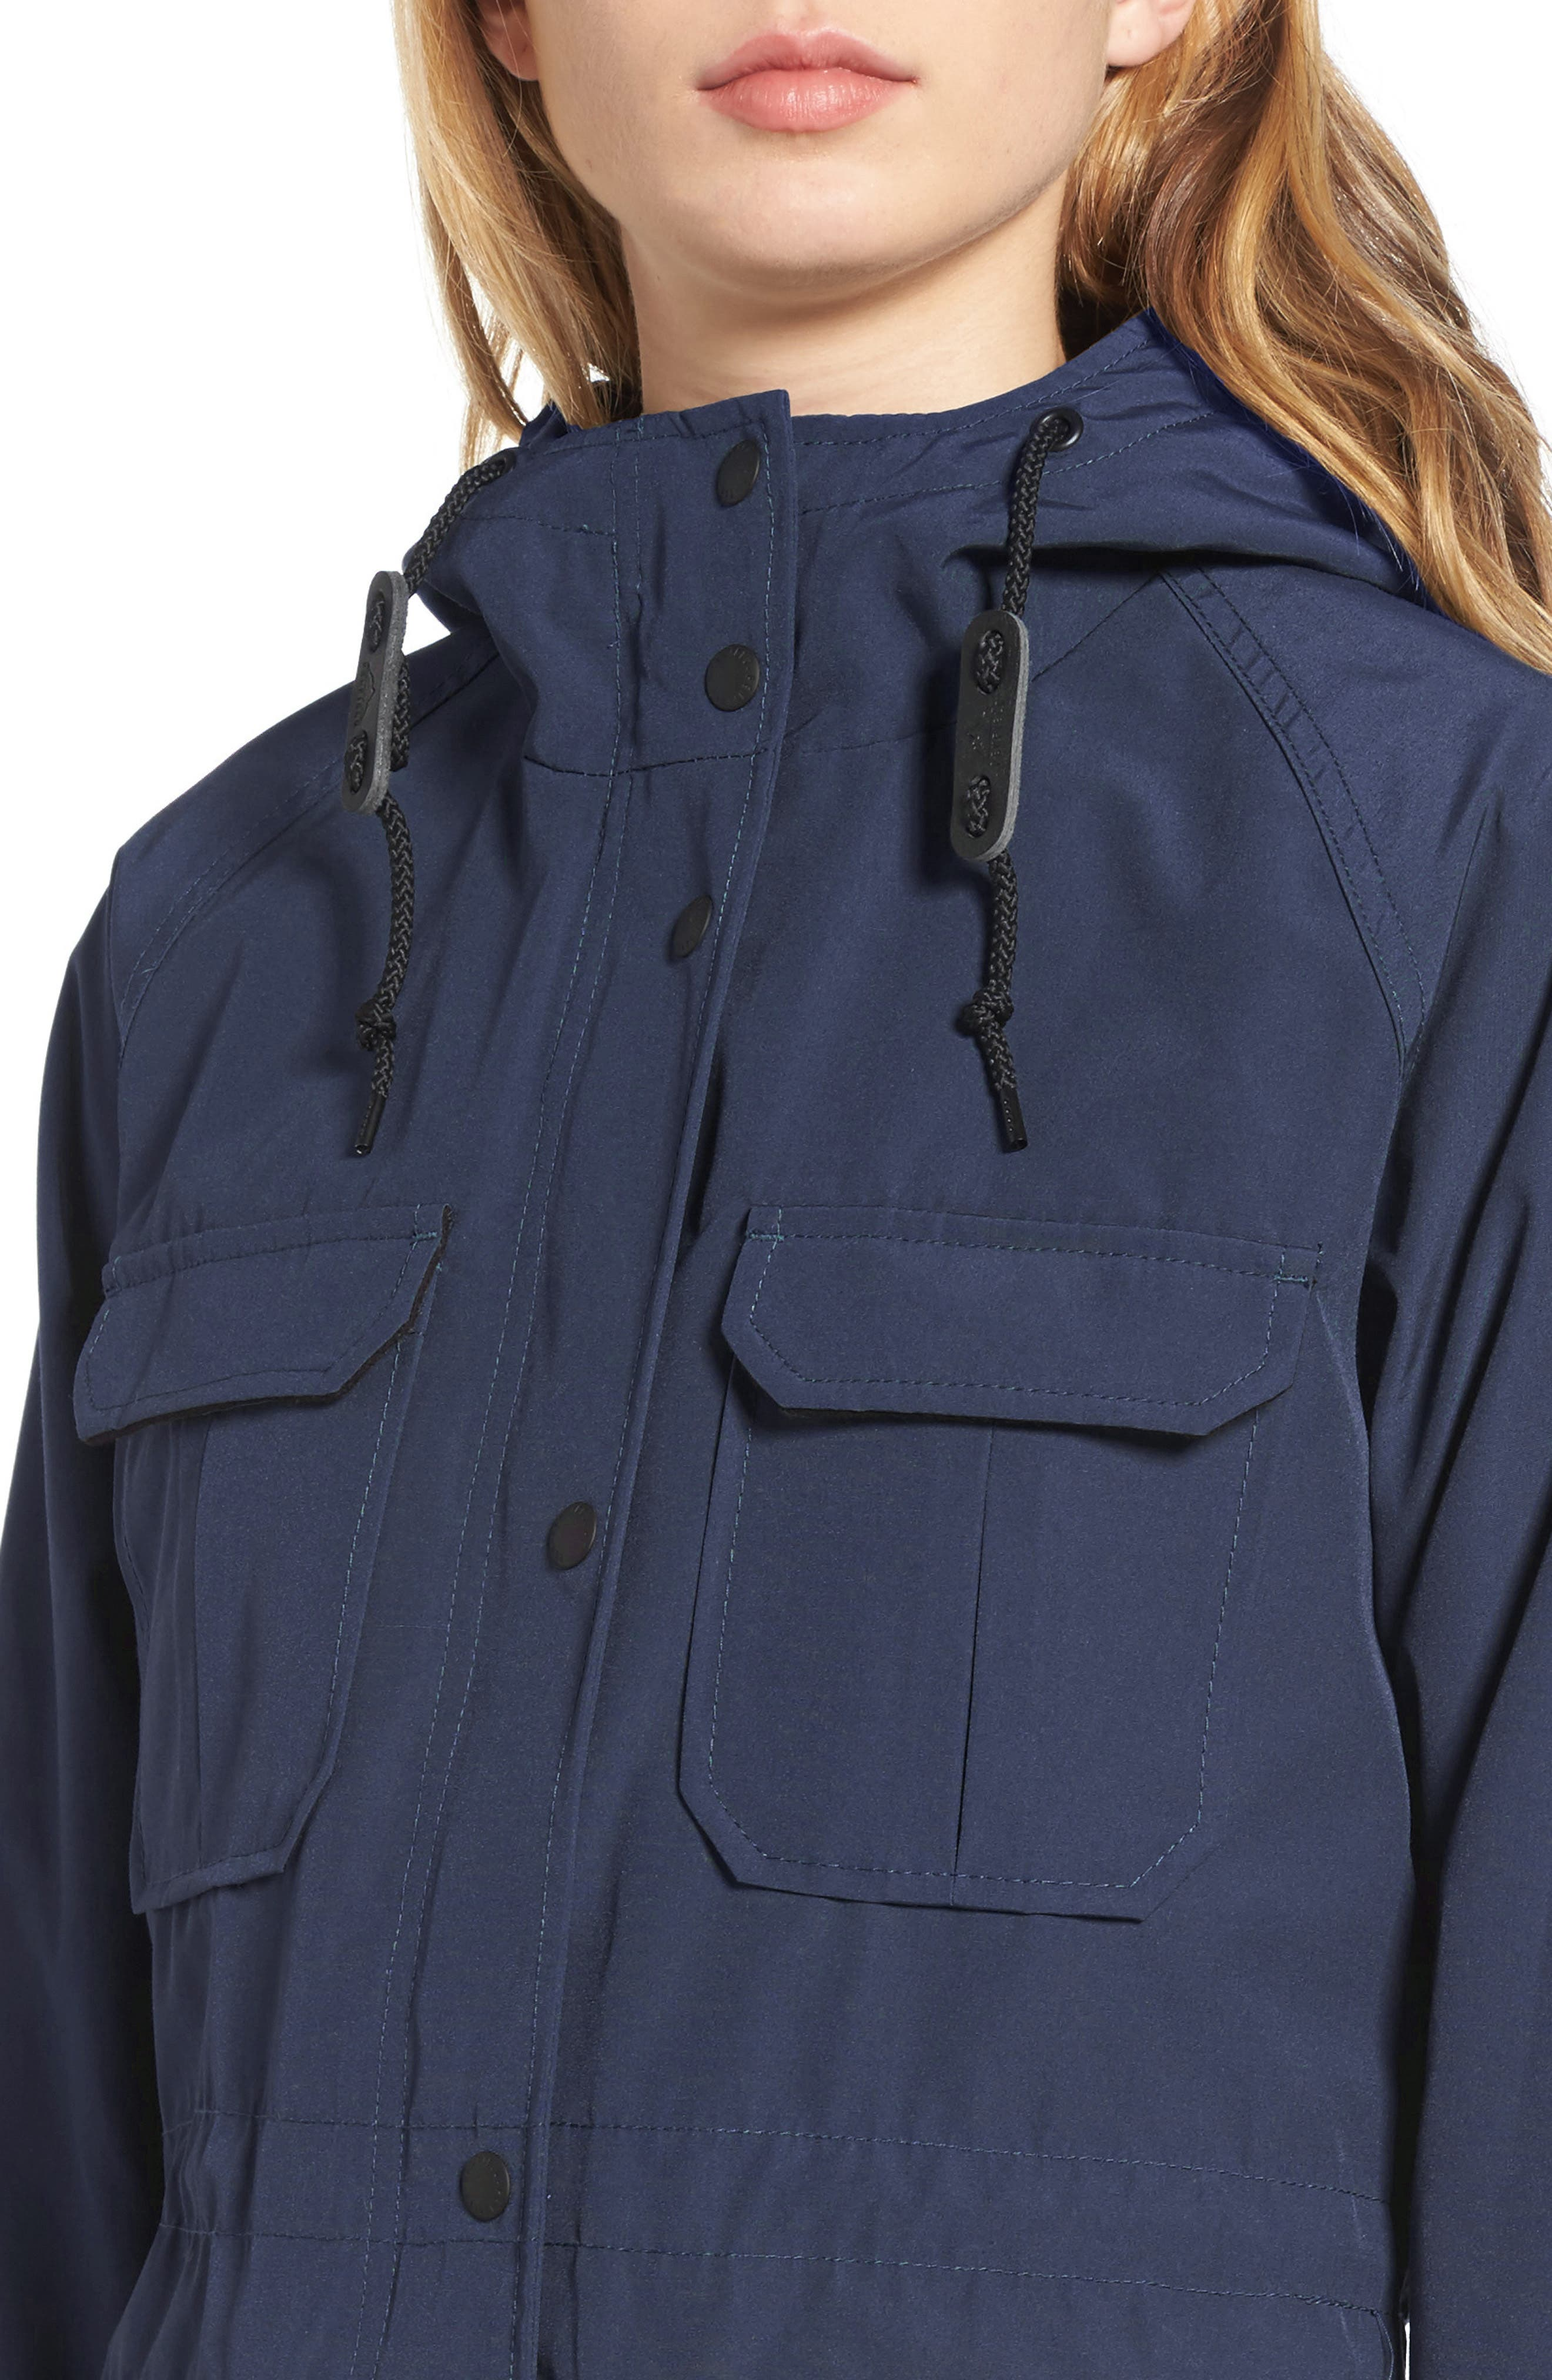 'Kasson' Double Layer Mountain Parka,                             Alternate thumbnail 4, color,                             Navy